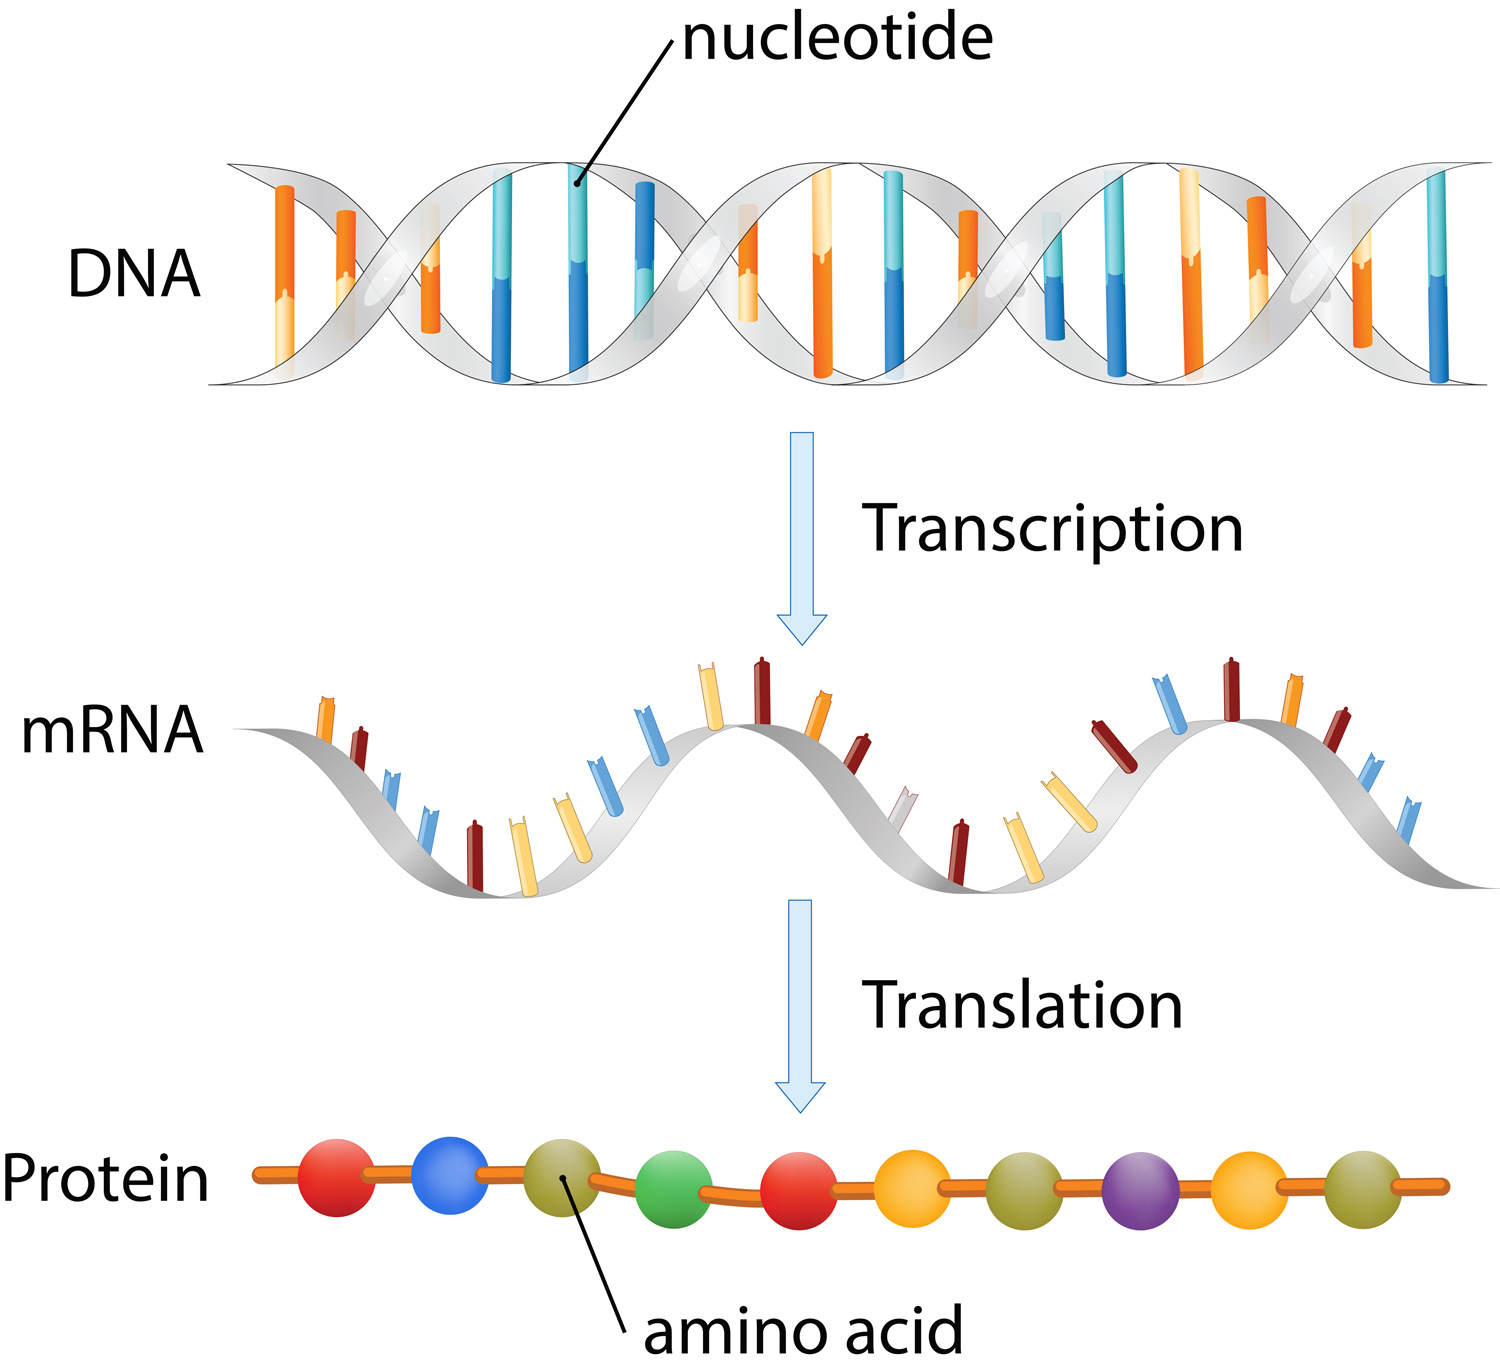 image depicting DNA transcription to mRNA and mRNA translation to protein